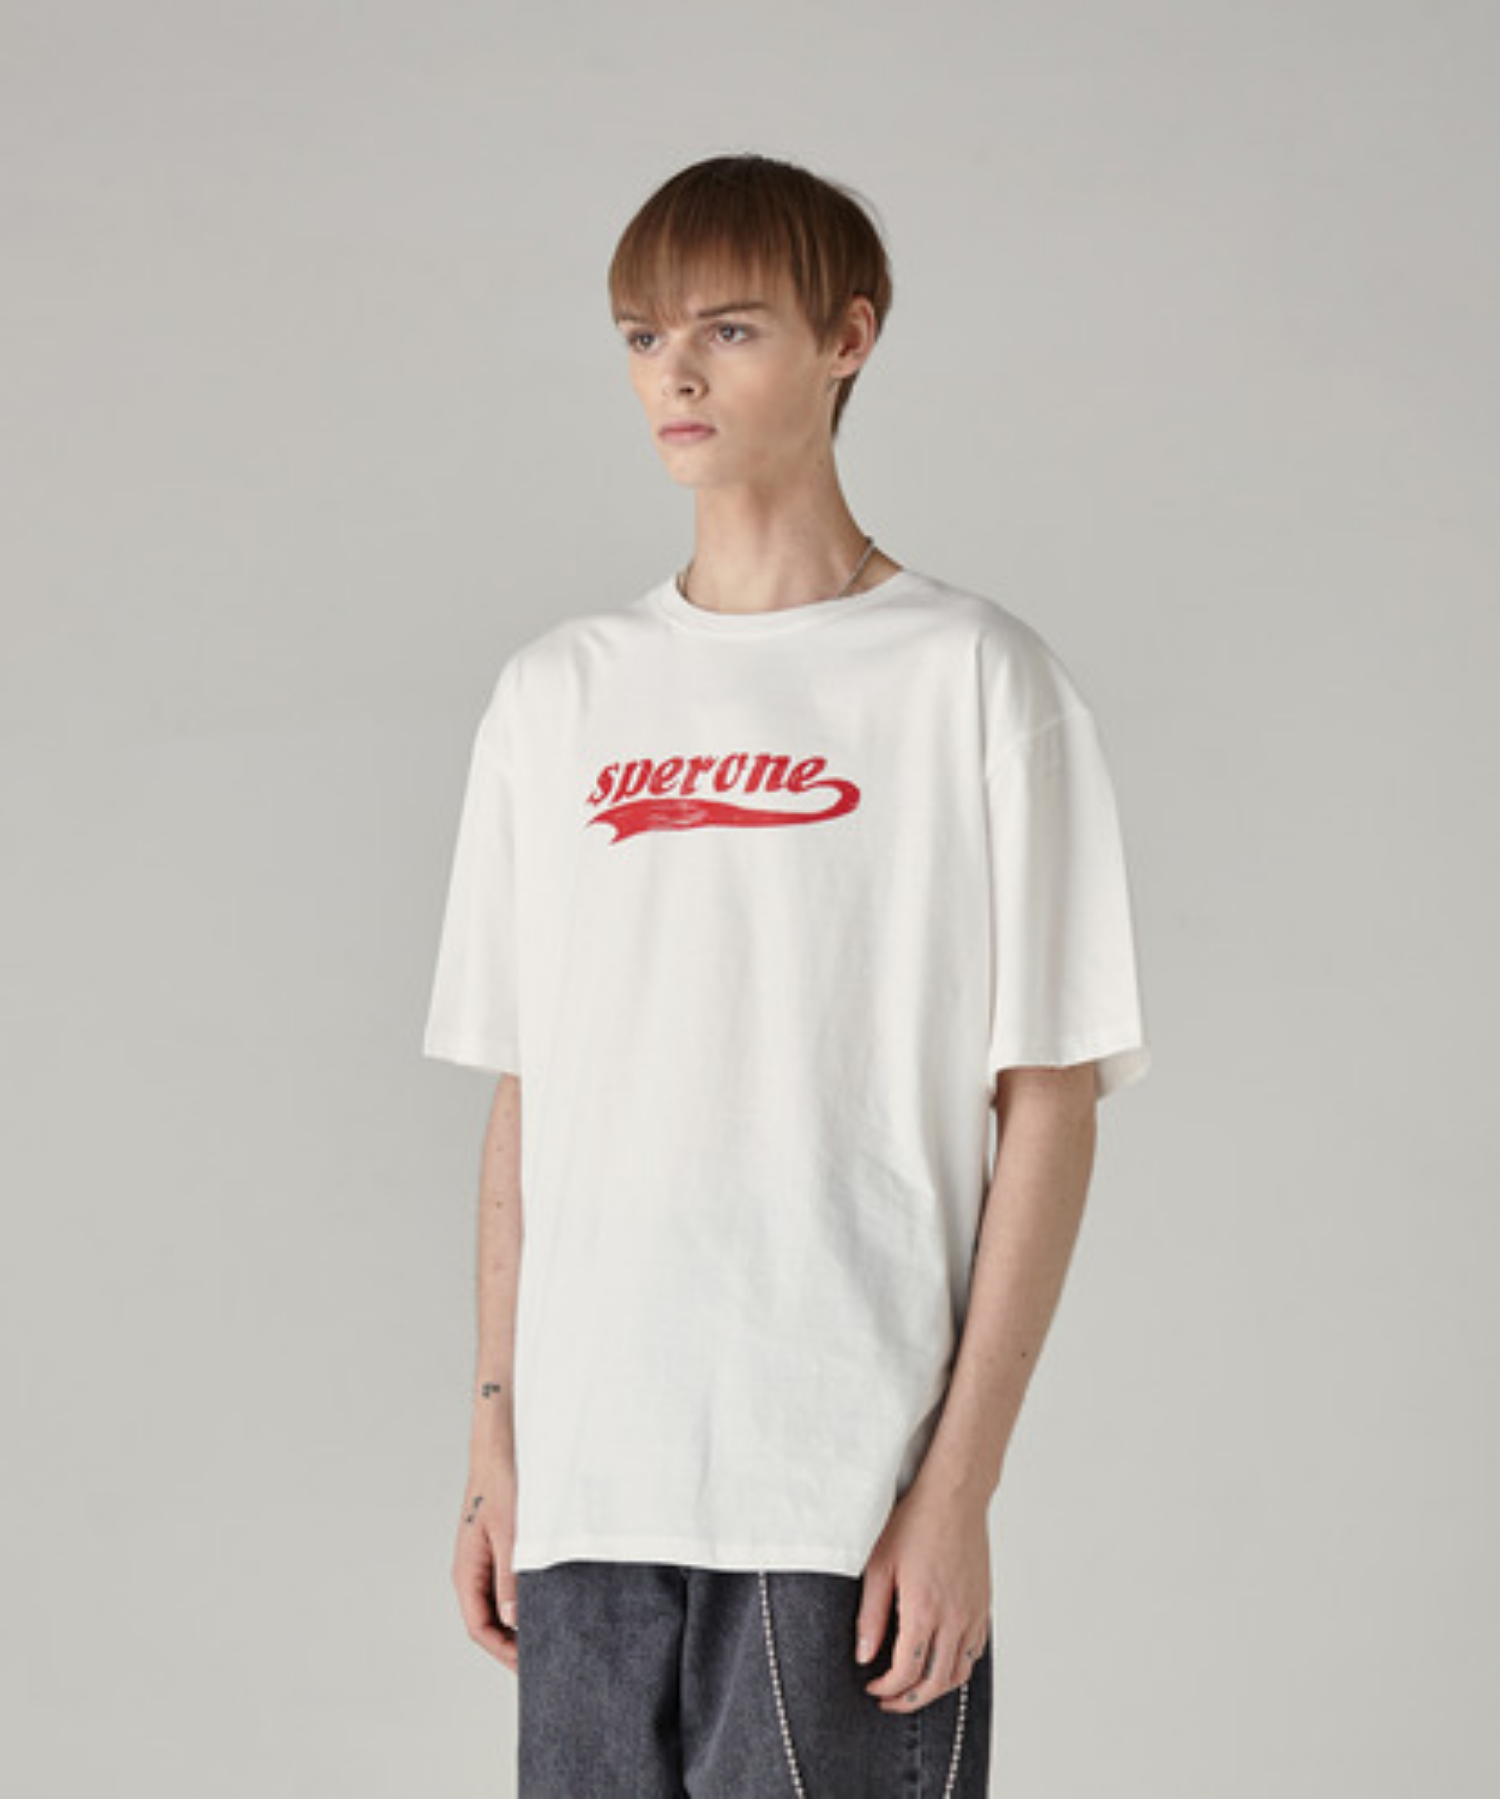 SPERONE LOGO T-SHIRT [WHITE/L]